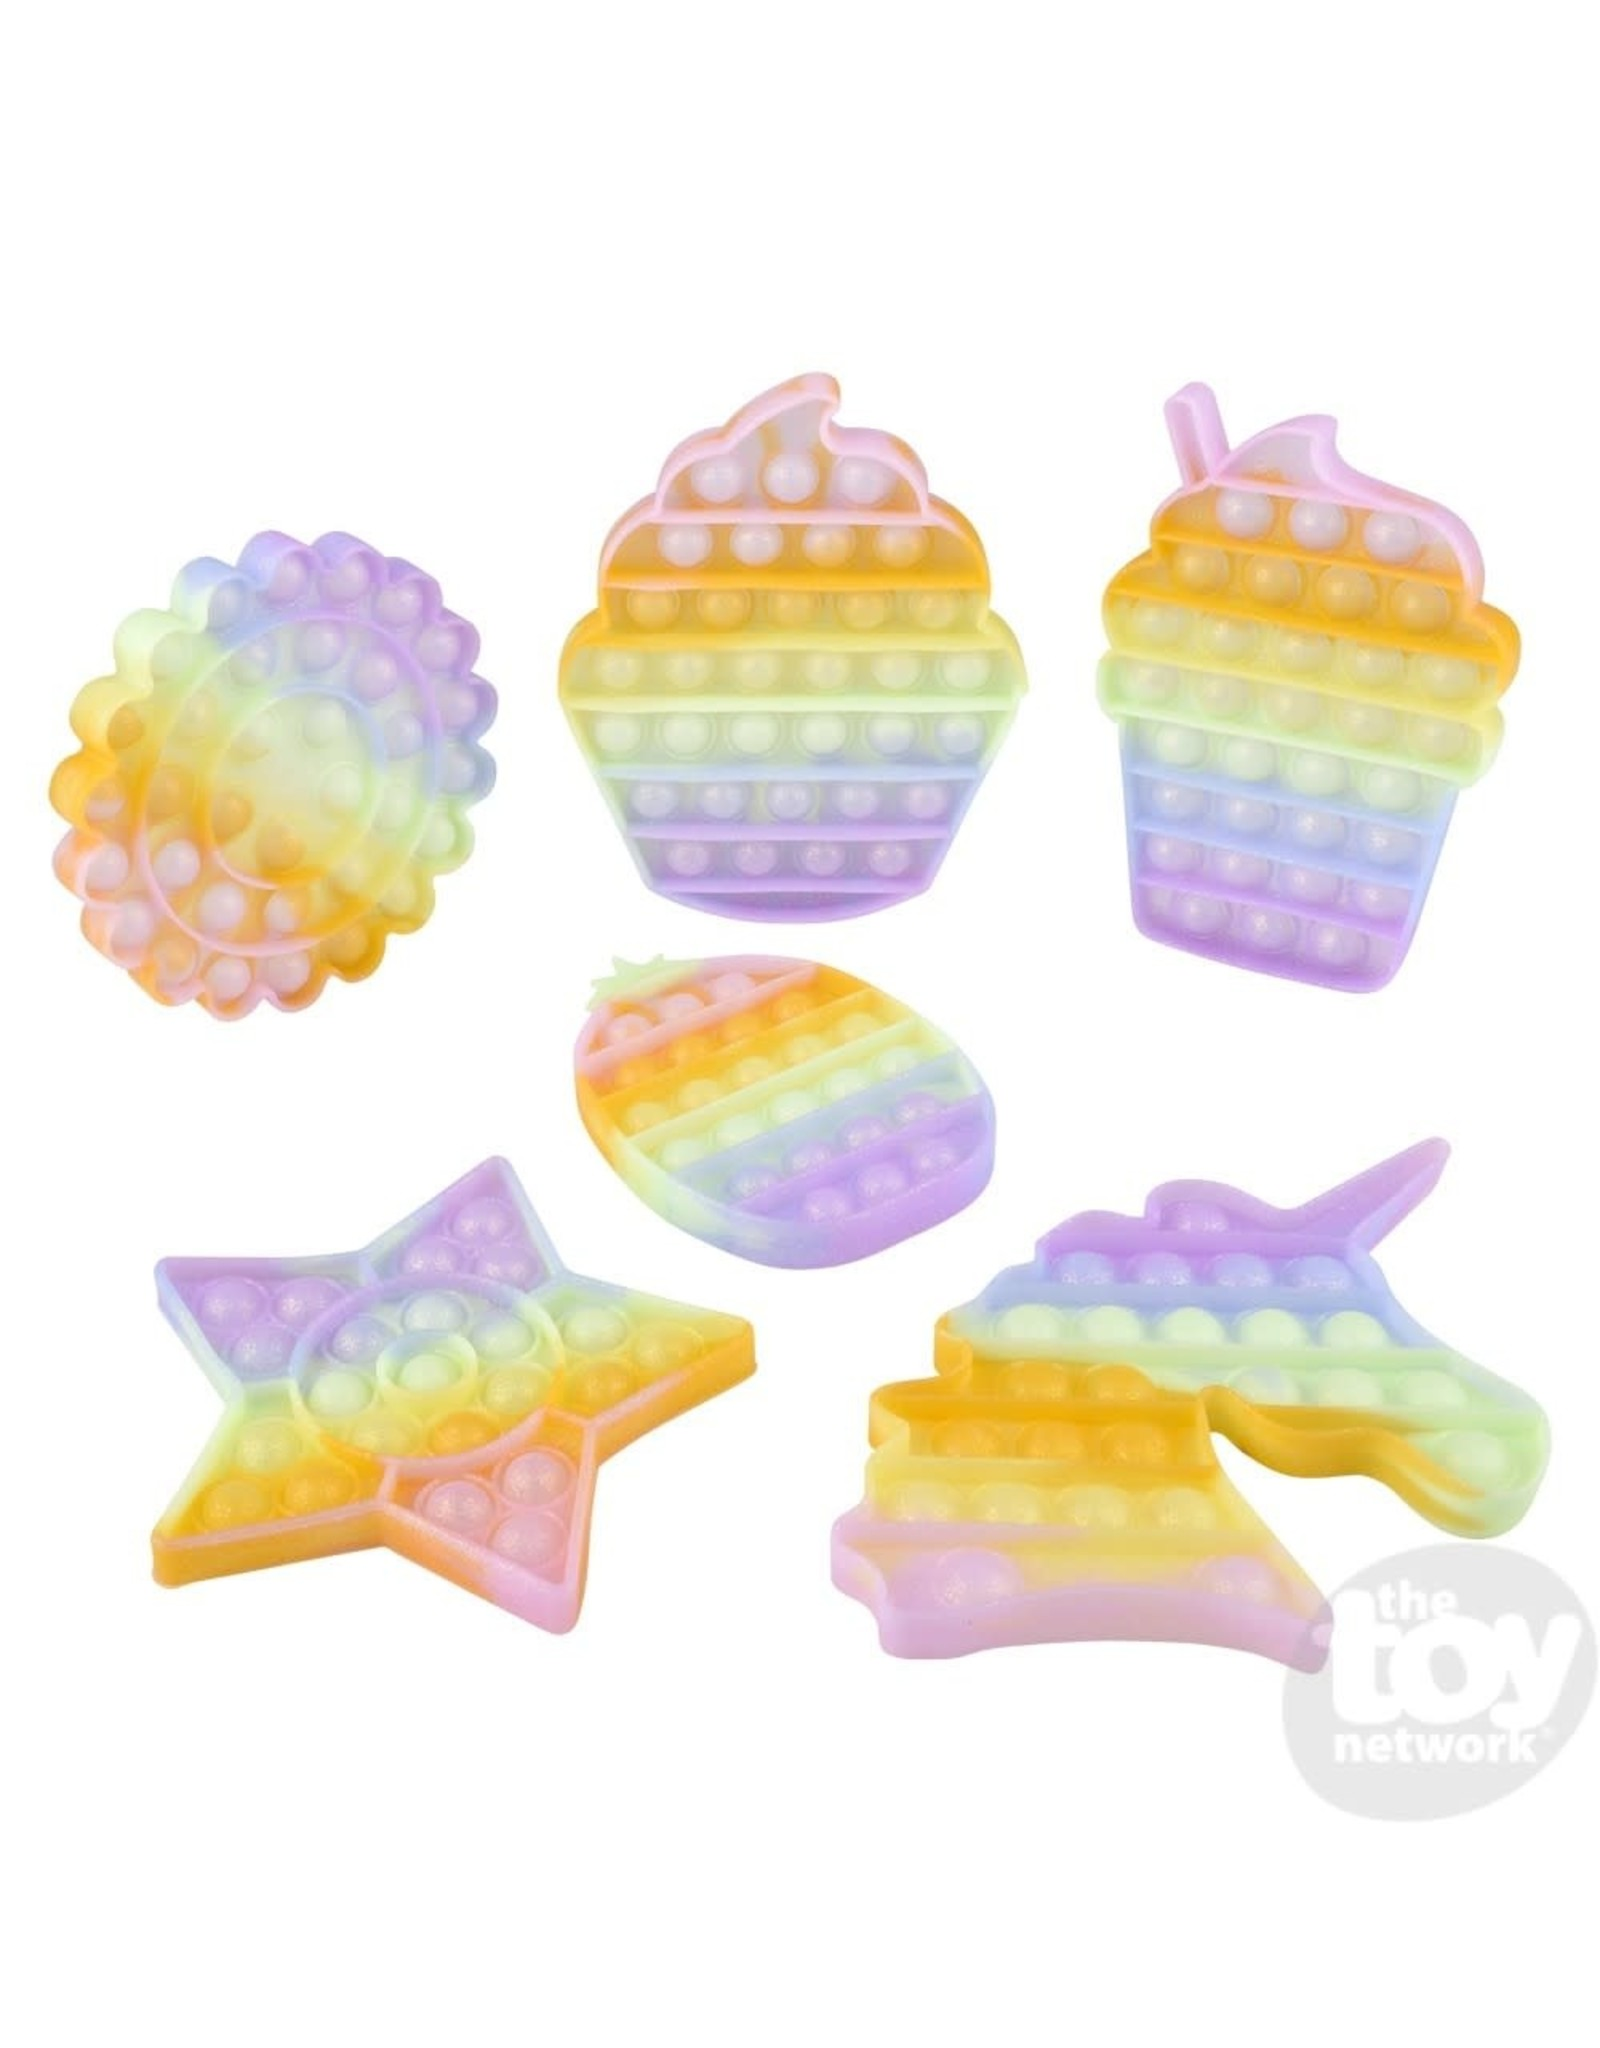 The Toy Network Glitter Bubble Poppers, Assorted Shapes